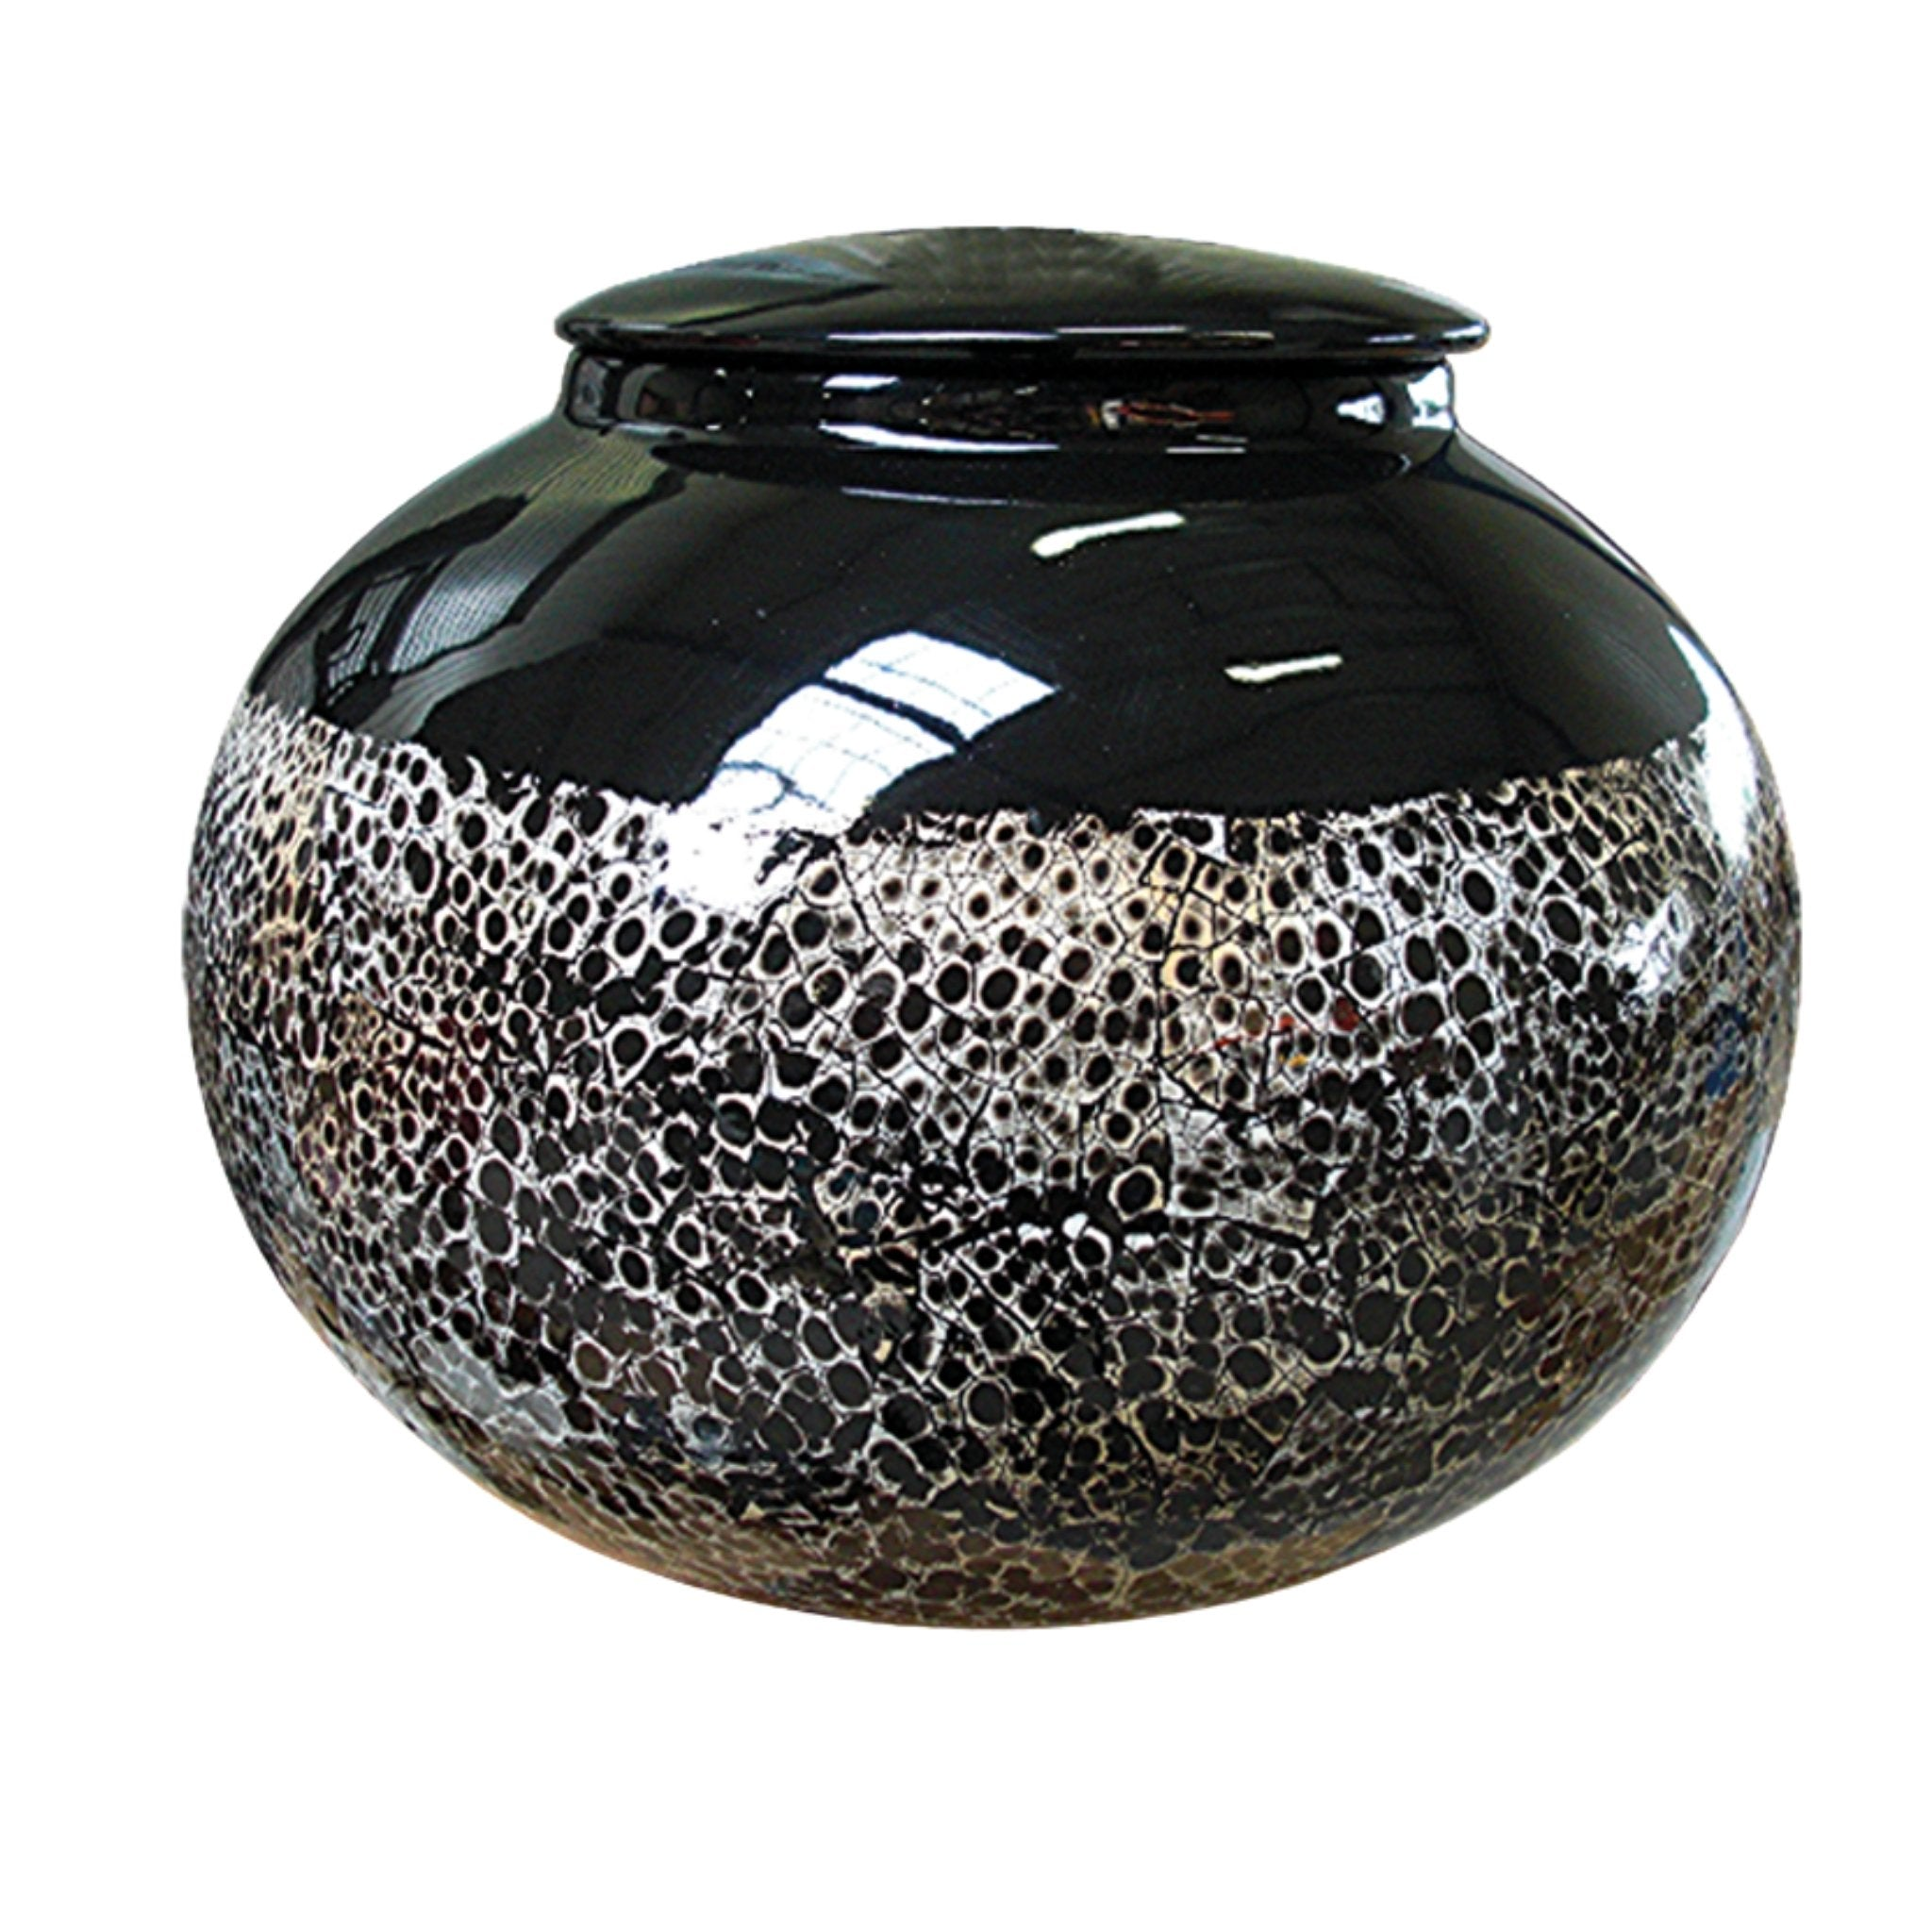 Allington Adult Cremation Ashes Urn Ice